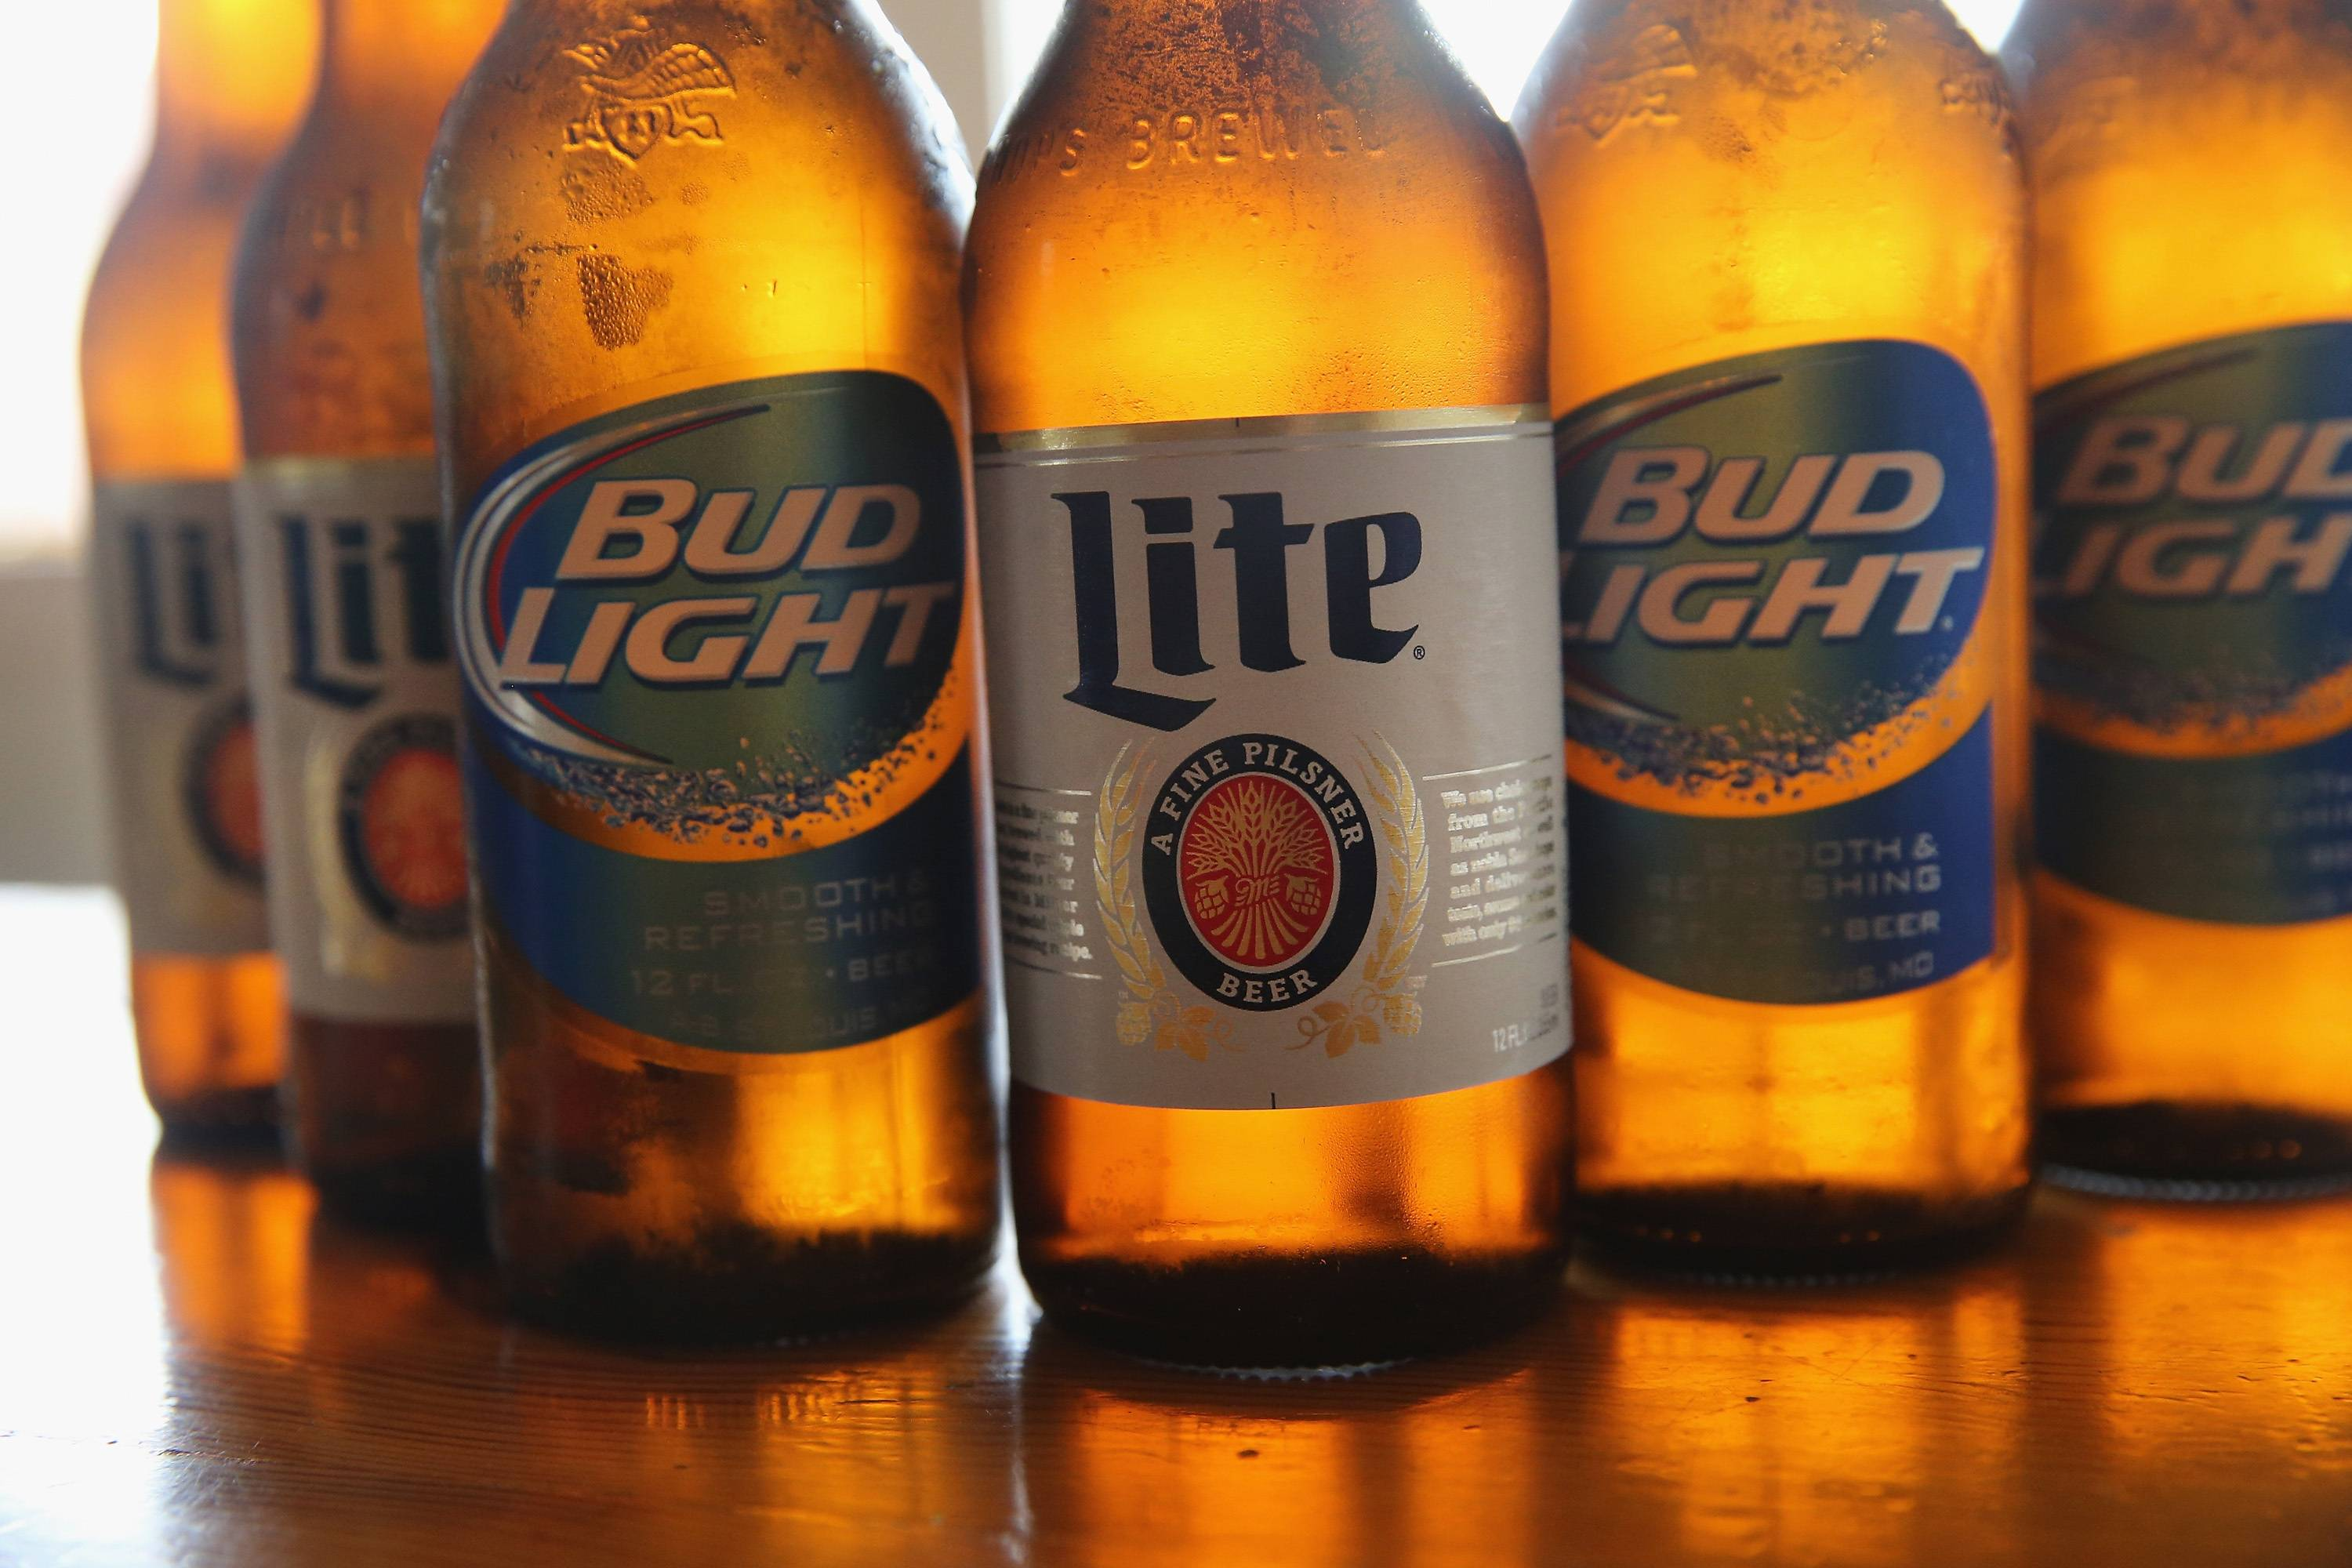 Renewable Energy Through Beer: Budweiser, Corona And Stella Artois To Make Switch photo